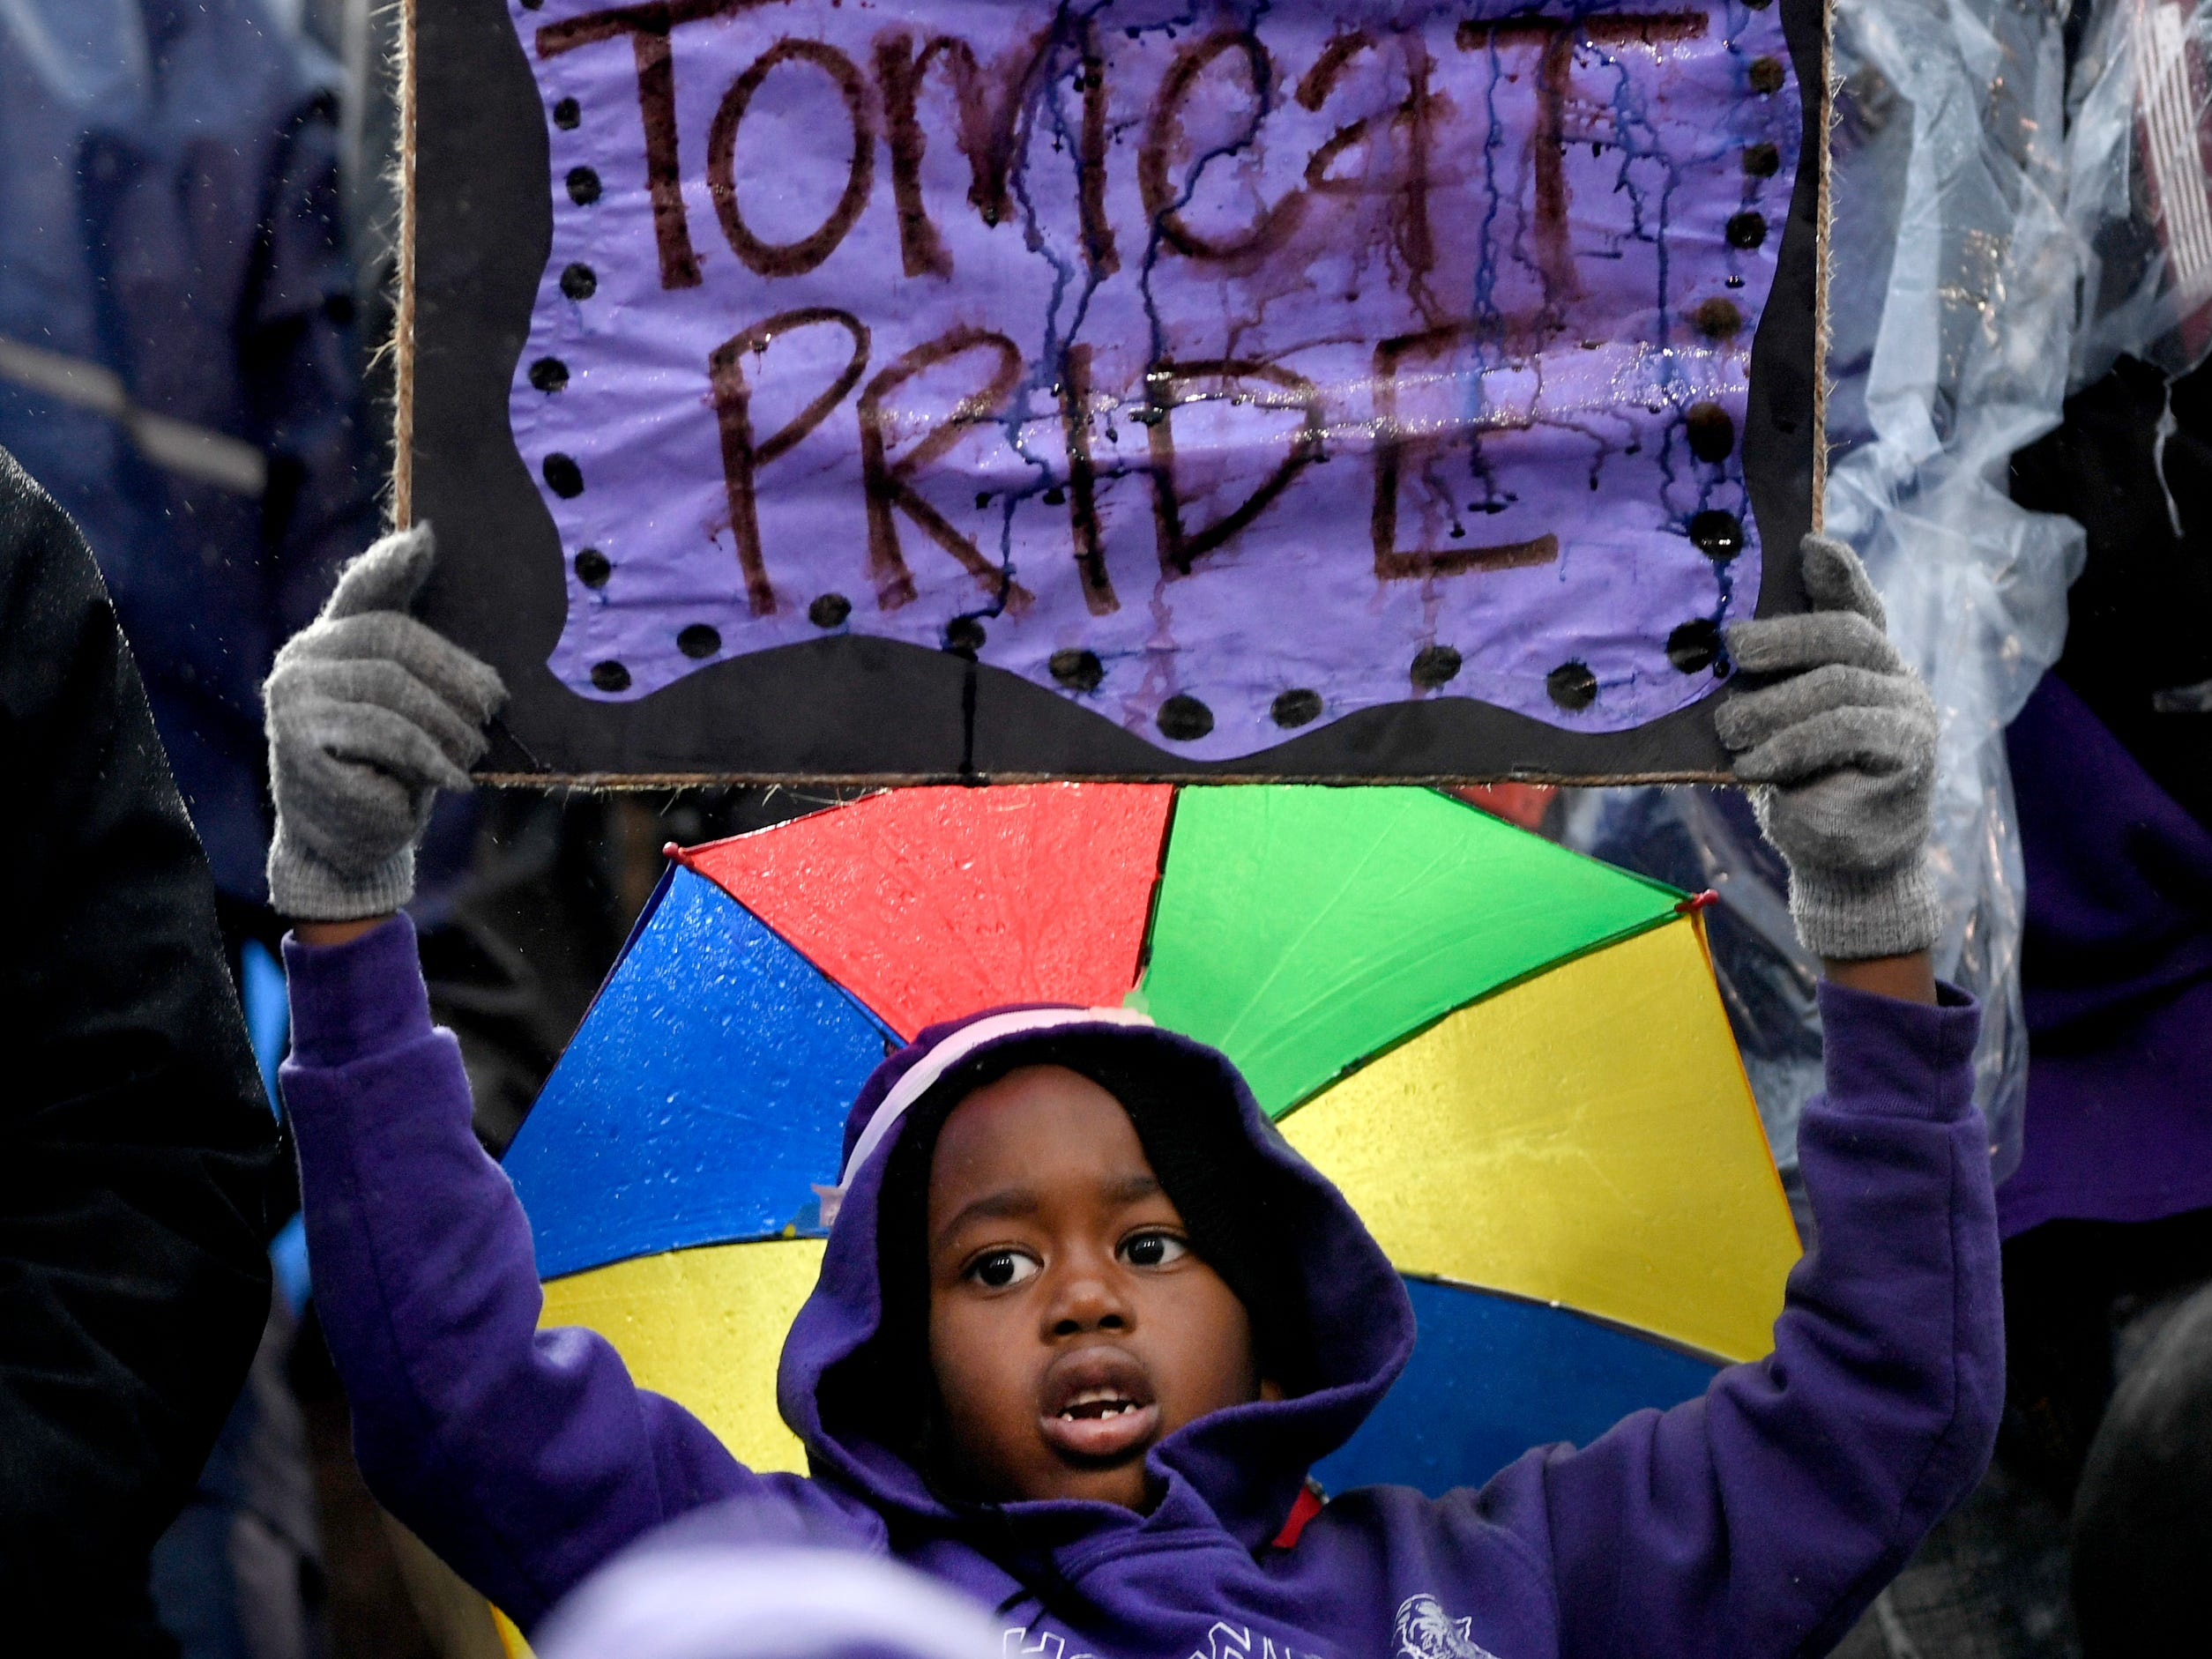 A Haywood fan holds up a sign in the rain during the Class 4A BlueCross Bowl state championship game against Greenville Thursday, Nov. 29, 2018, at Tennessee Tech's Tucker Stadium in Cookeville, Tenn.